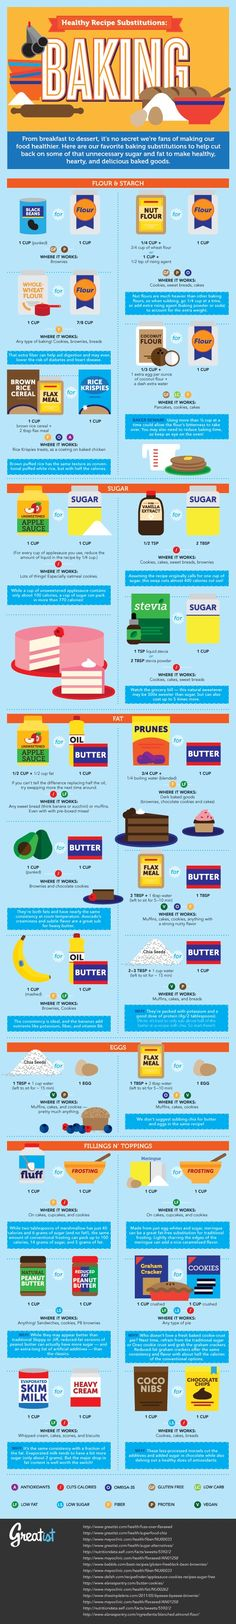 [Infographic] Healthy Recipe Substitutions: Baking